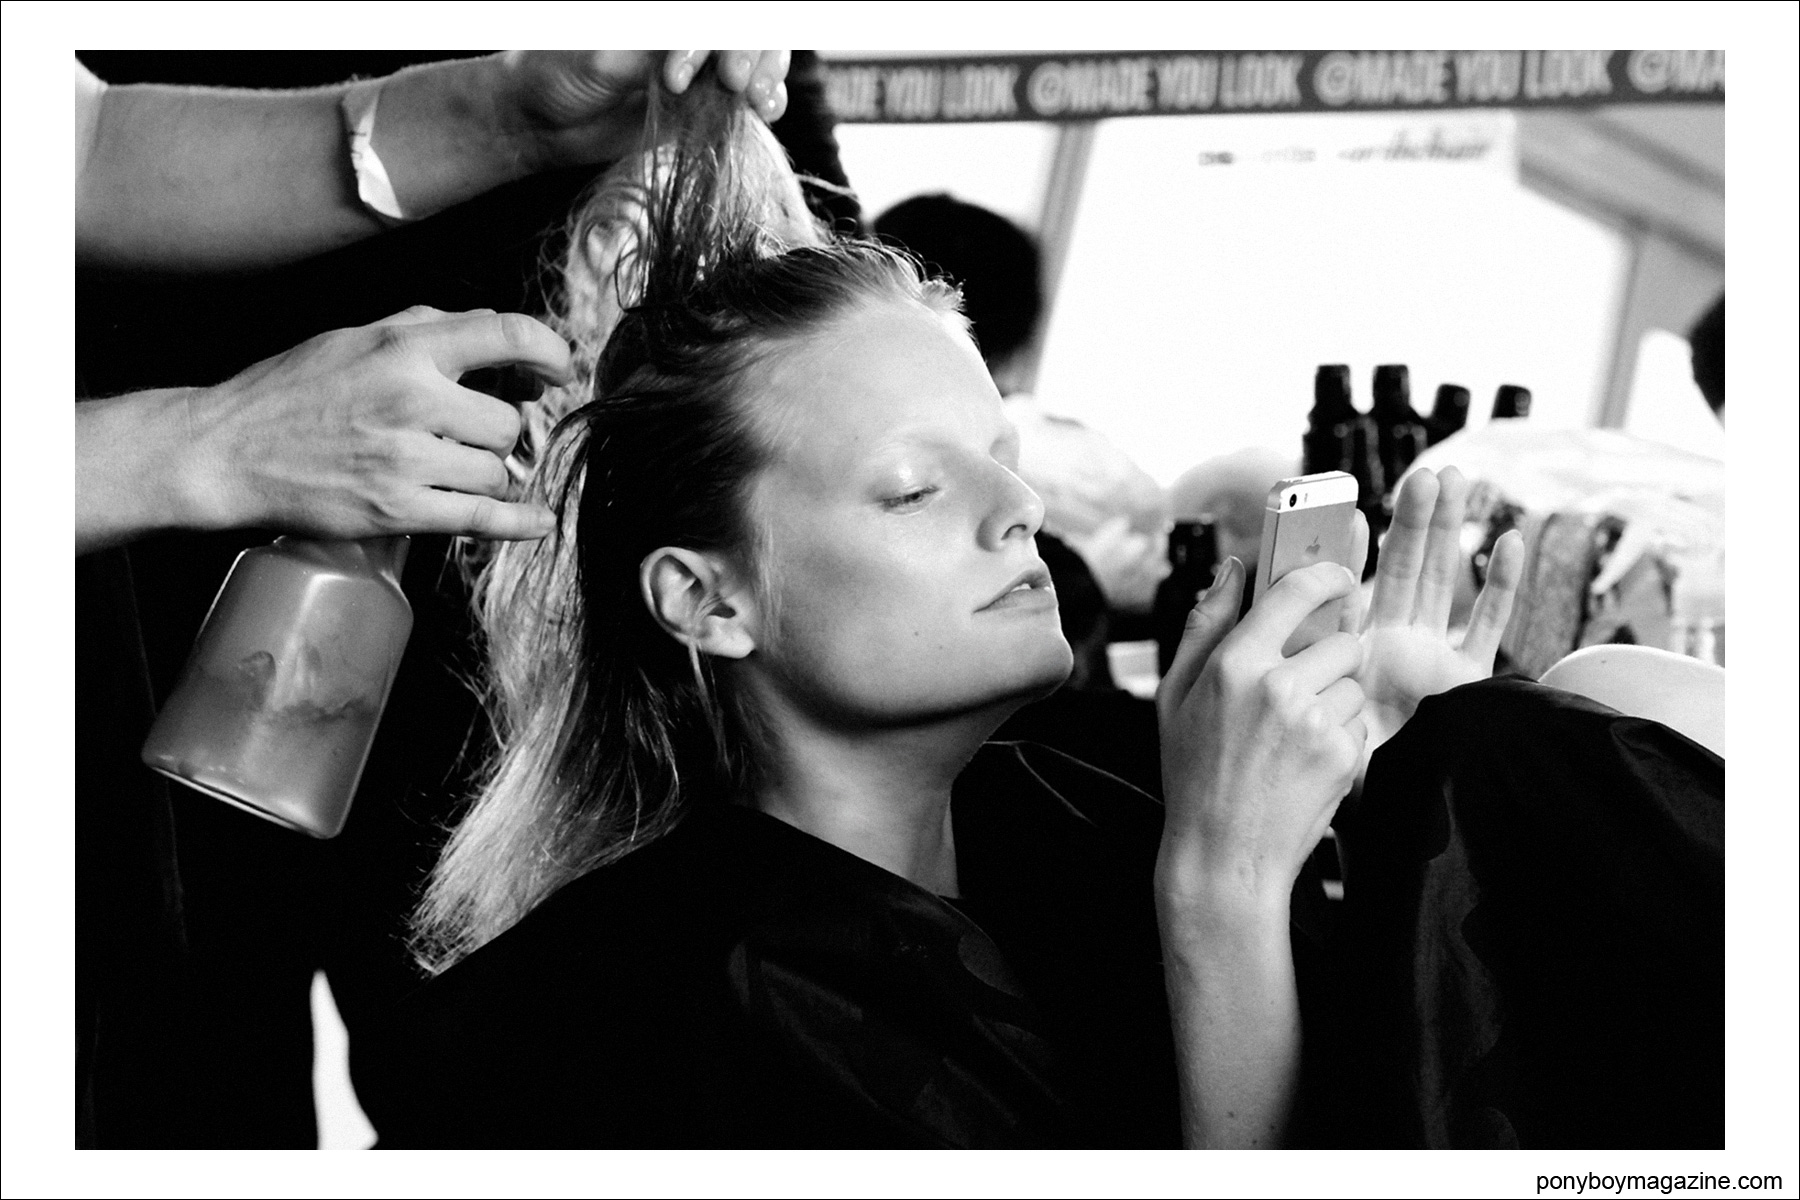 Hanne Gaby Odiele photographed backstage during hair/makeup at Tim Coppens S/S15 at Milk Studios in New York. Photograph by Alexander Thompson for Ponyboy Magazine.